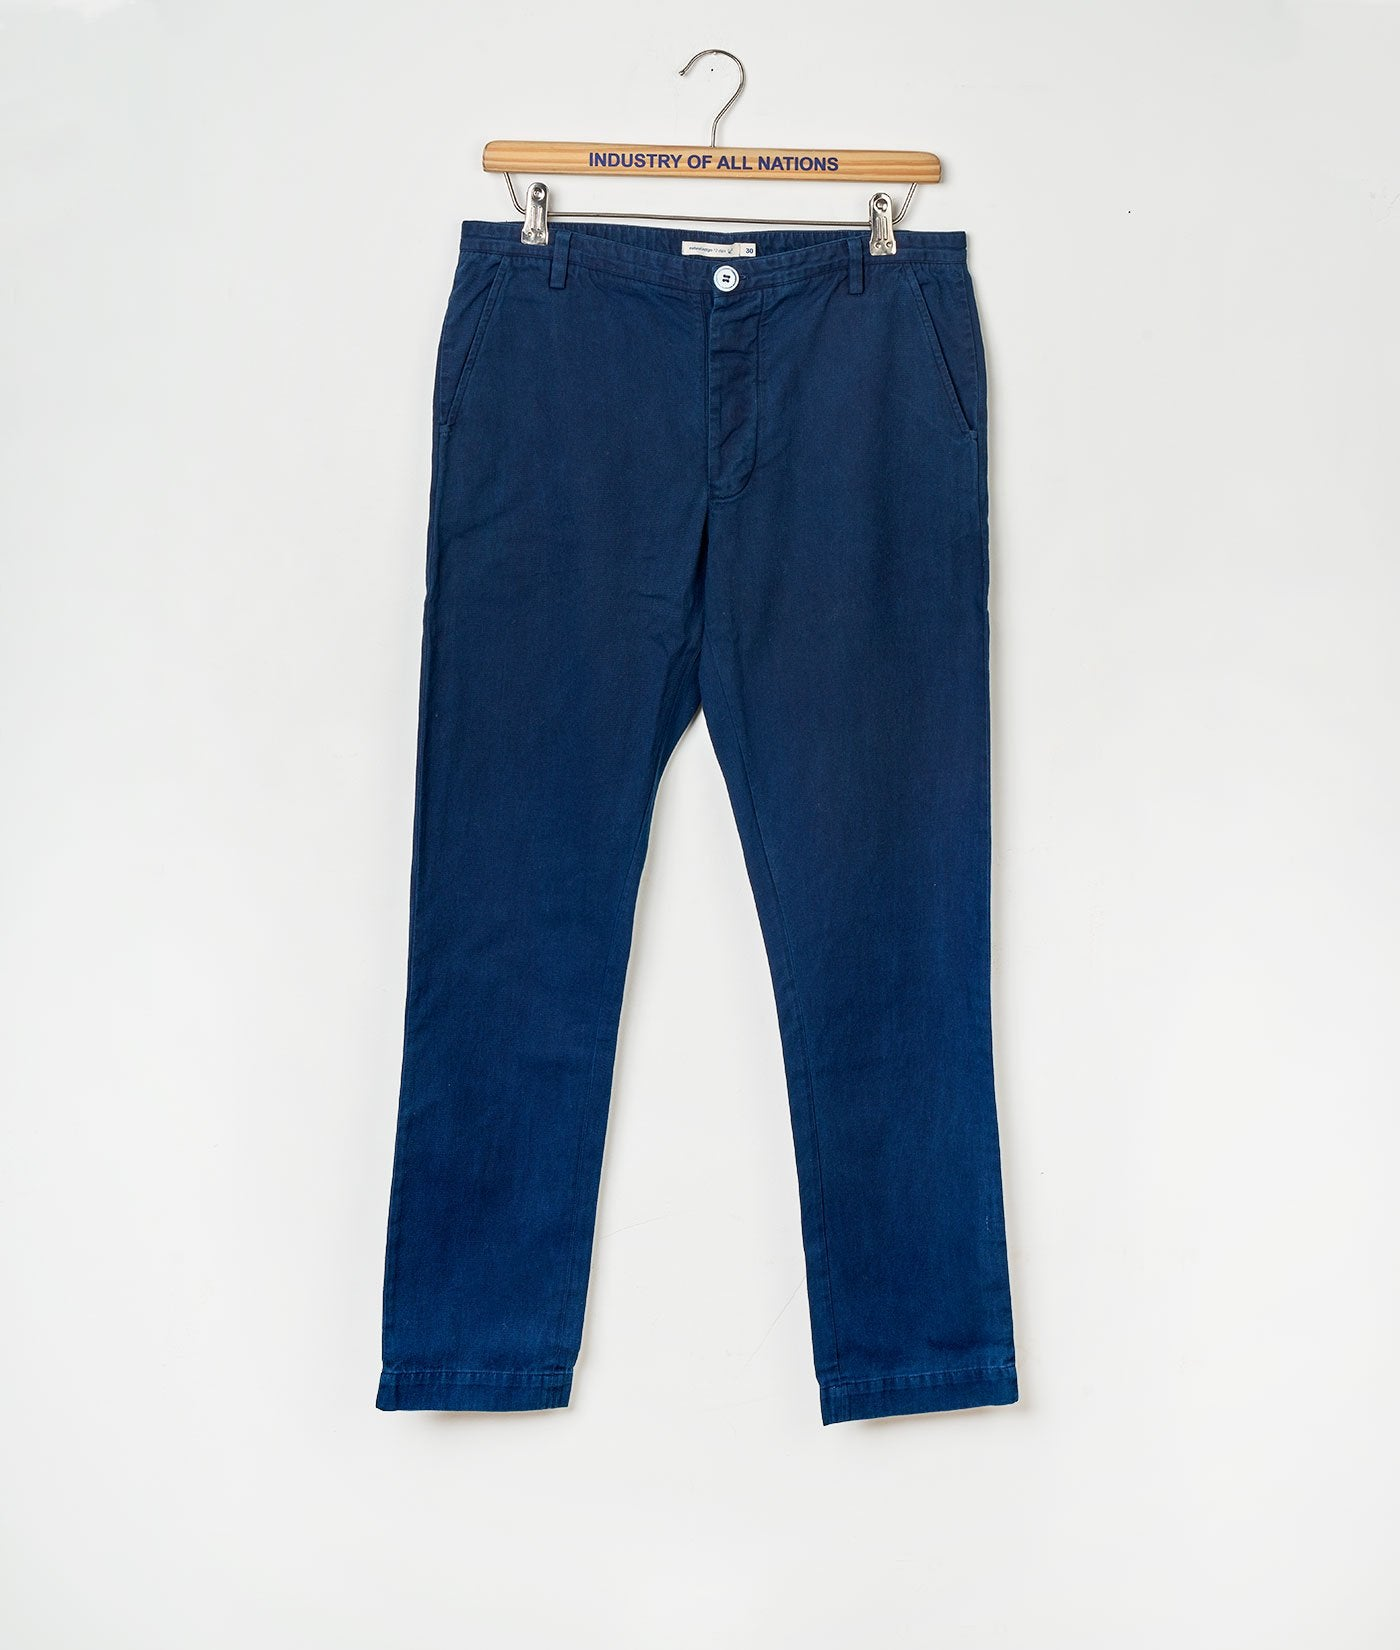 Industry of All Nations Organic Cotton Chino Pants Indigo 12